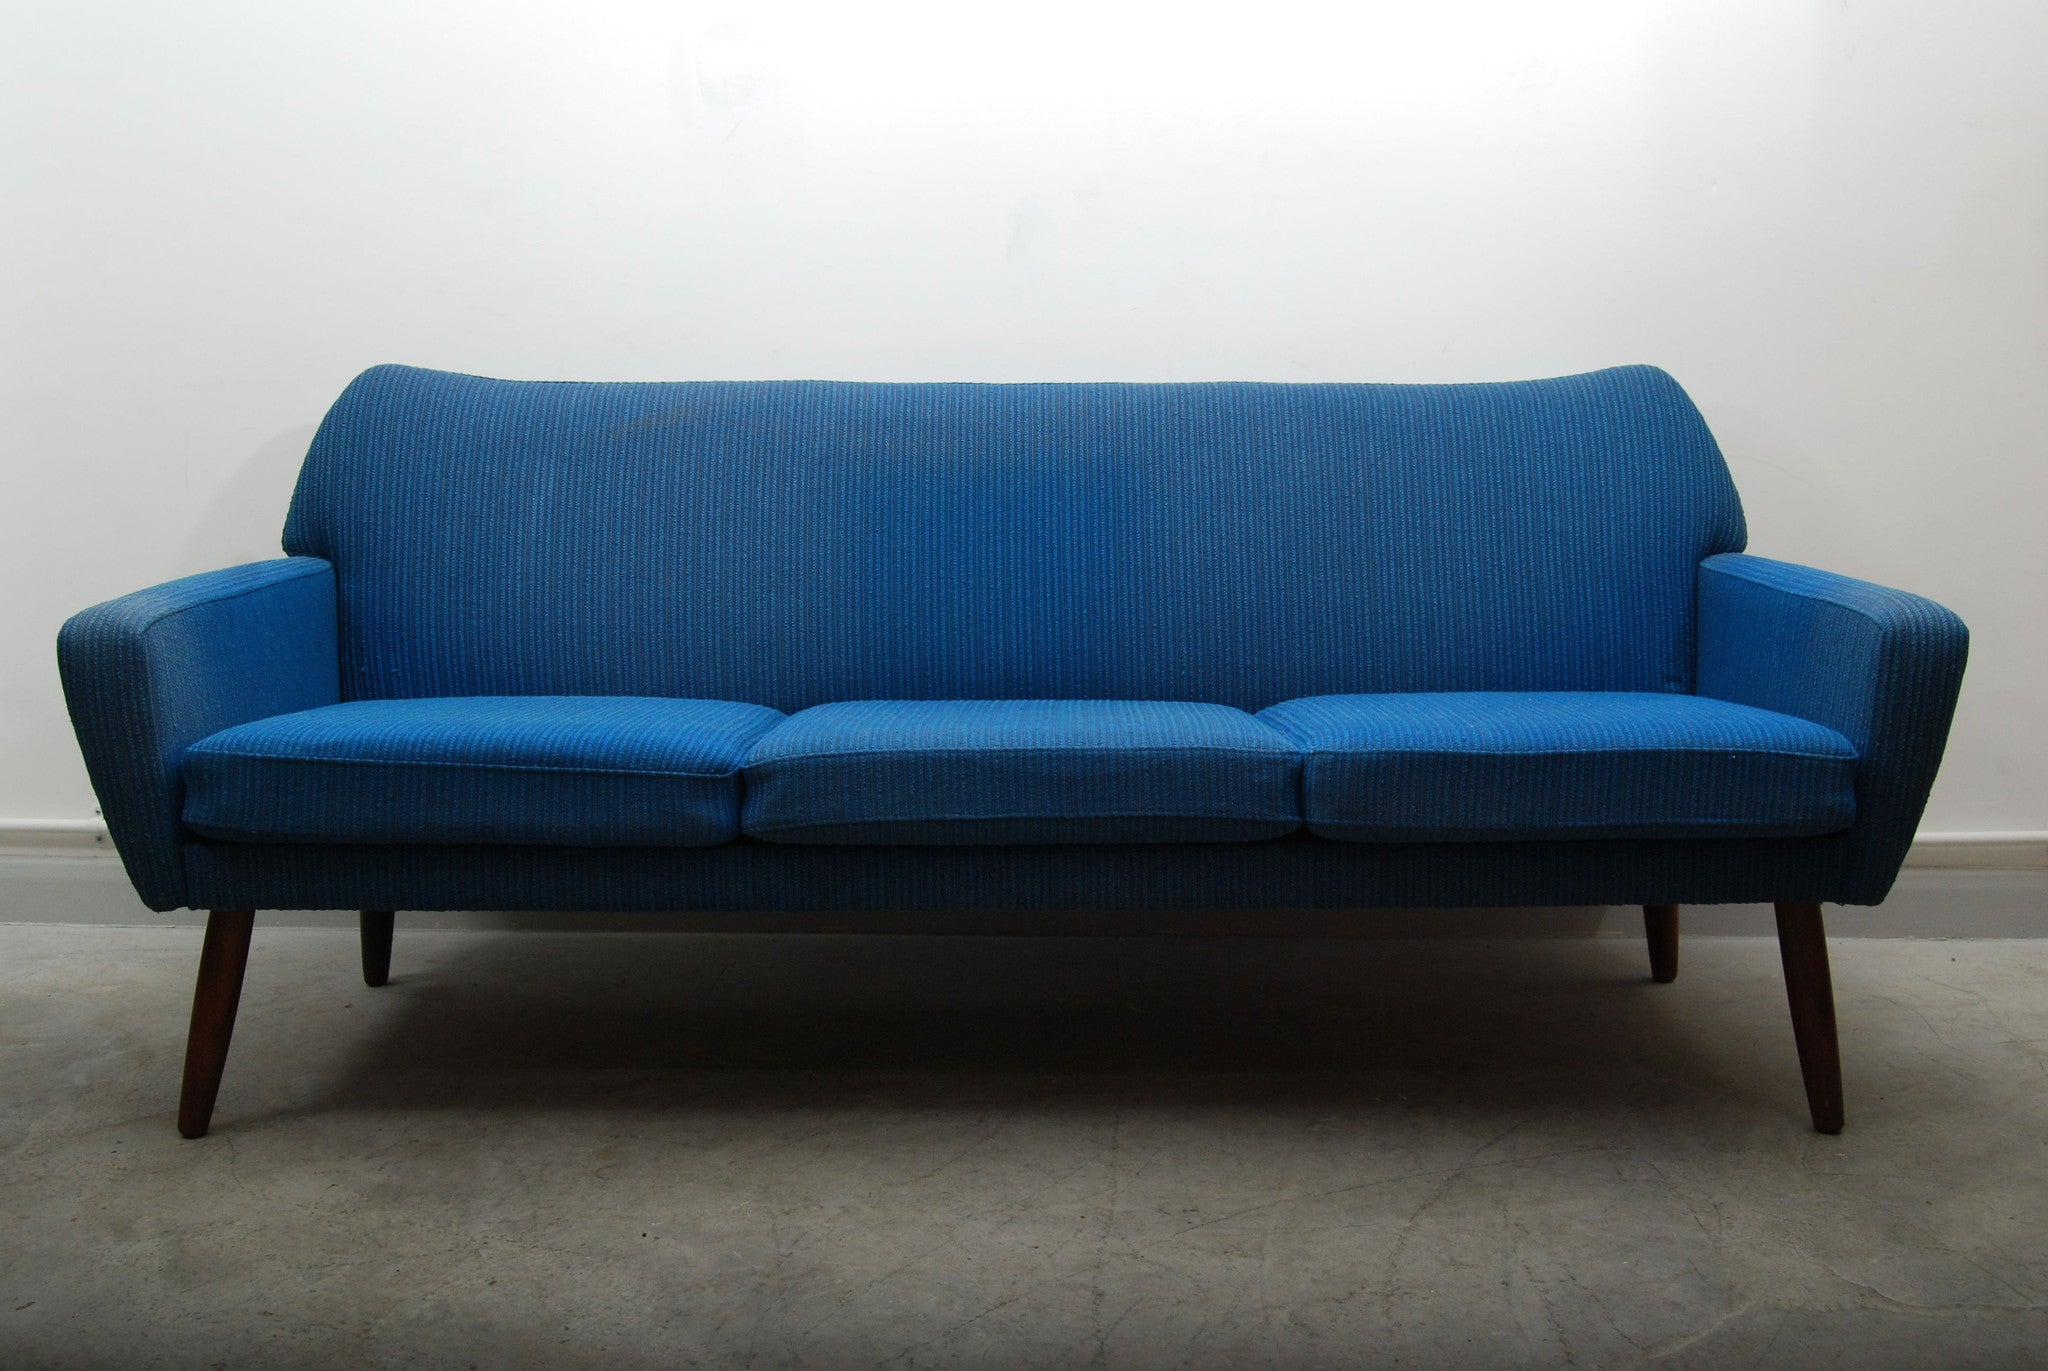 Chase & Sorensen 1950s three seater